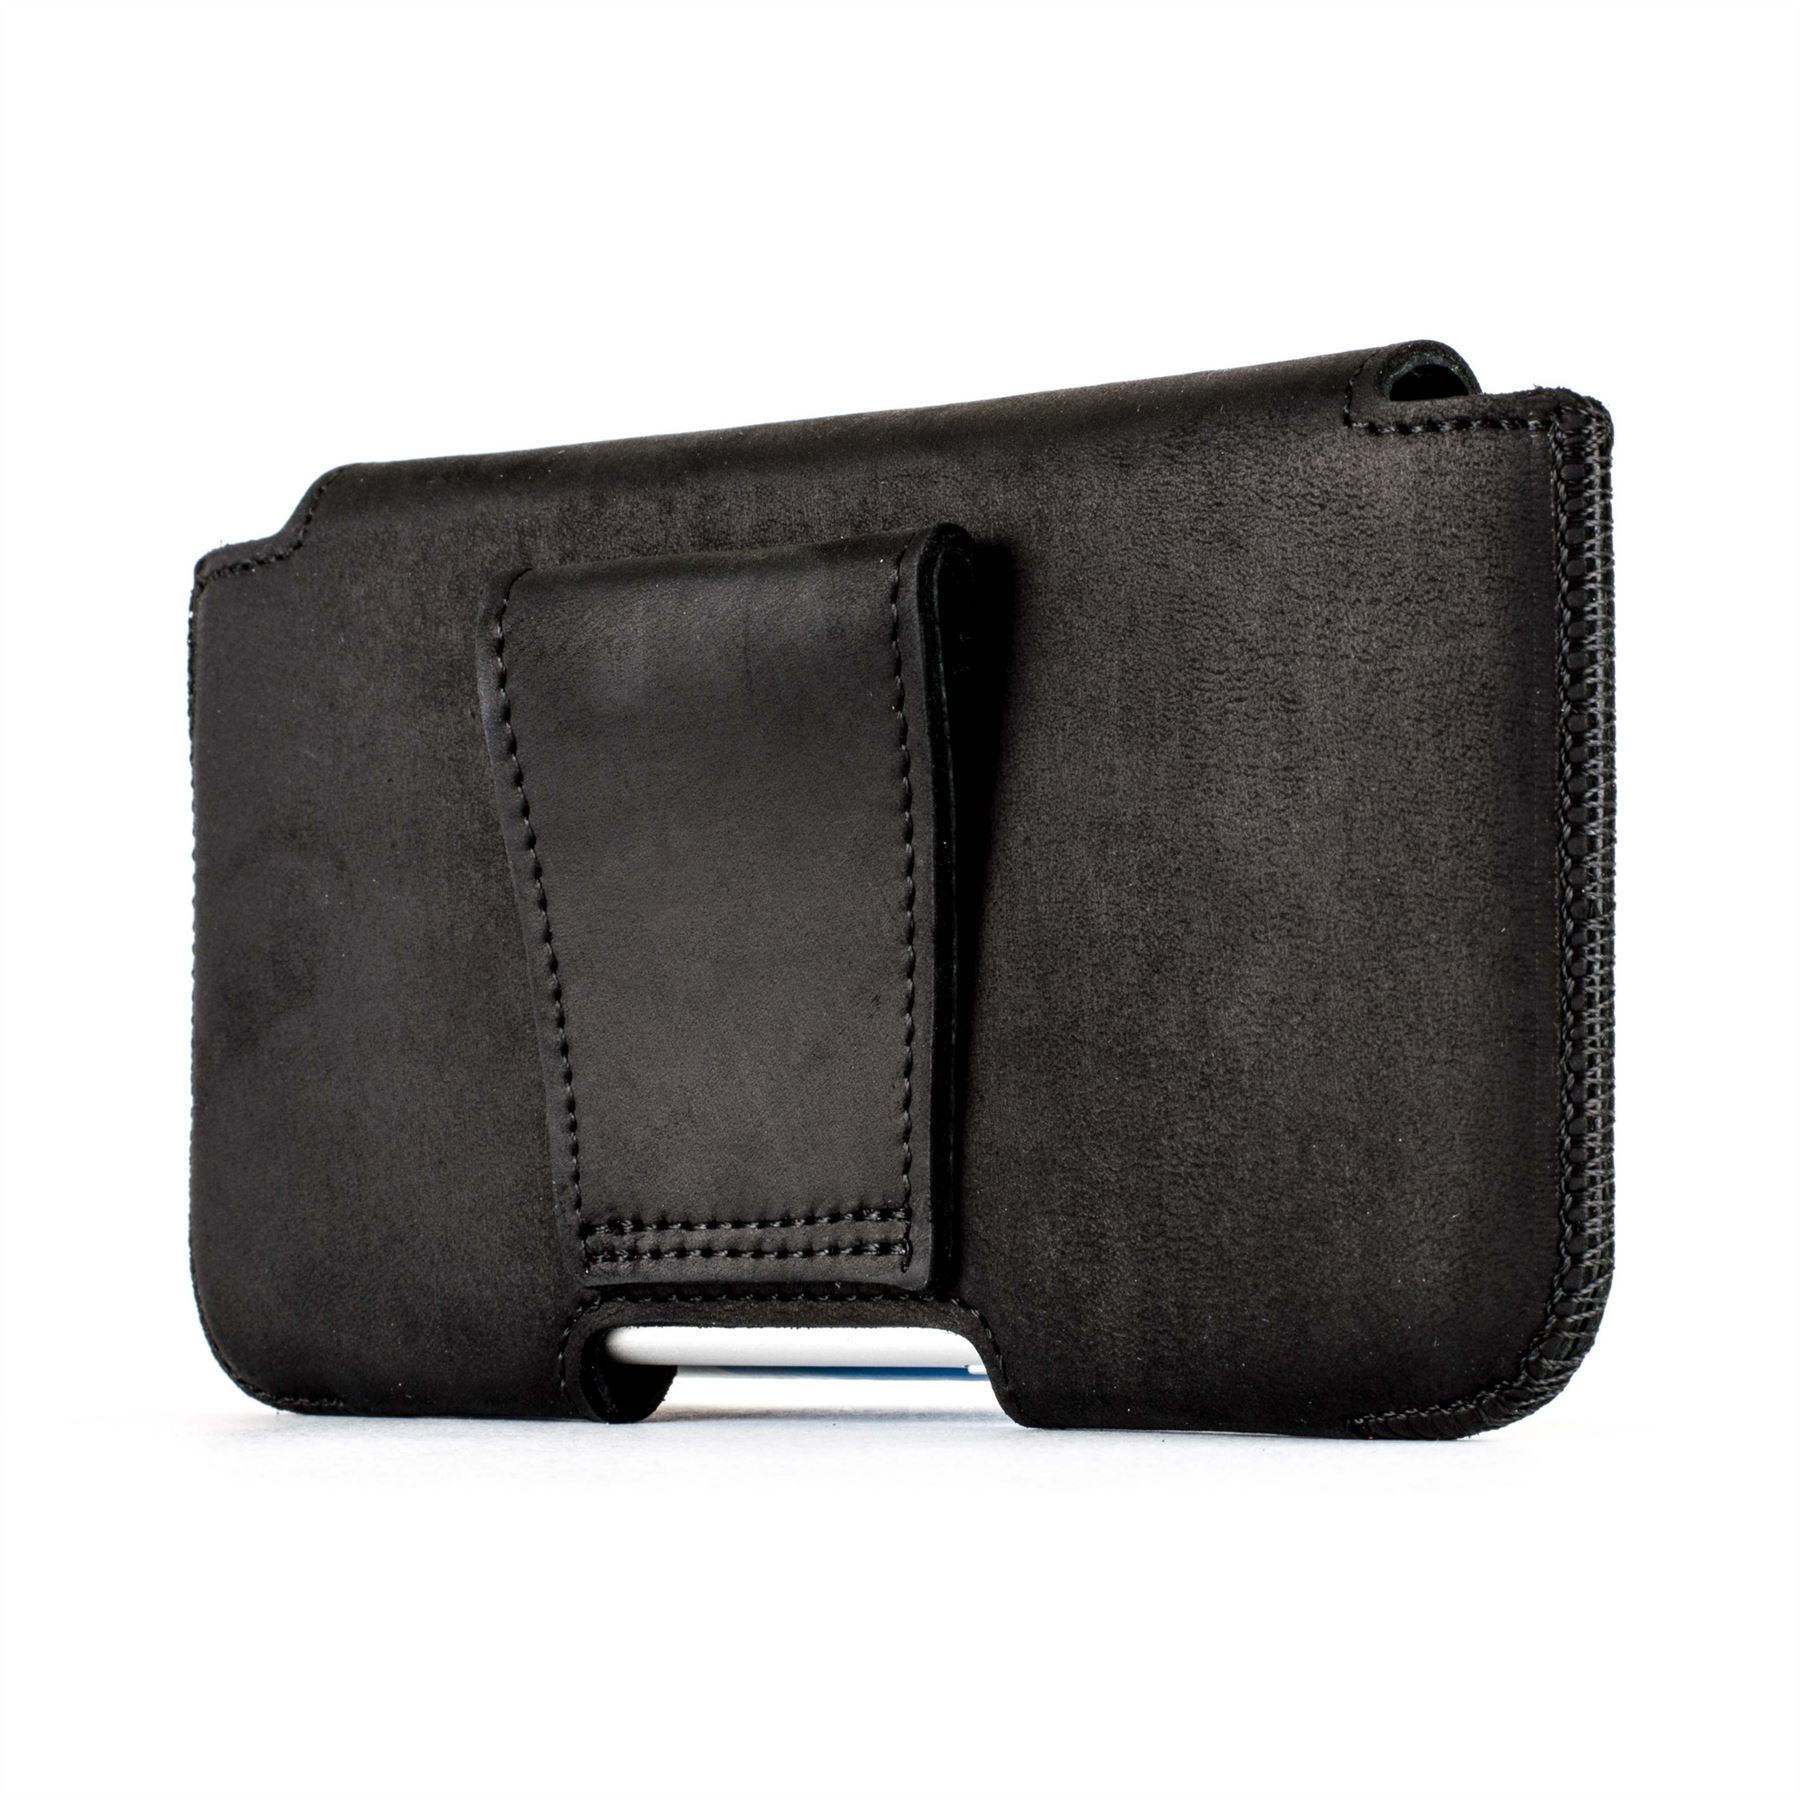 Snakehive real leather belt pouch case holder for apple iphone 5 5s se ebay - Iphone 5s leather case ...